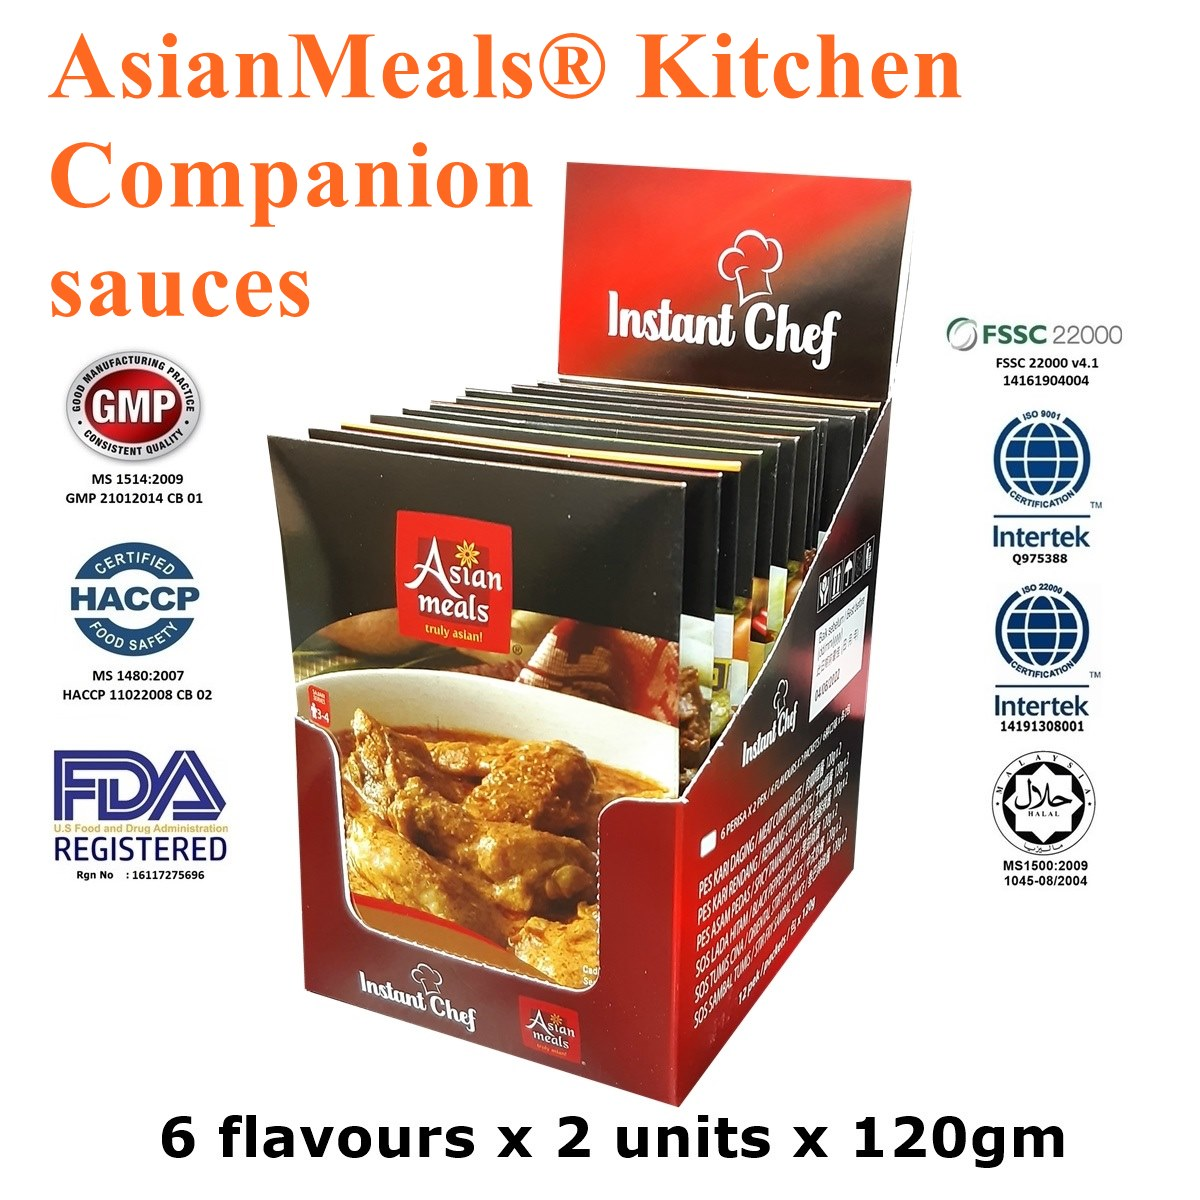 AsianMeals® Kitchen Companion sauces: Sambal - Curry - Black Pepper - Rendang - Asam Pedas - Stir Fry